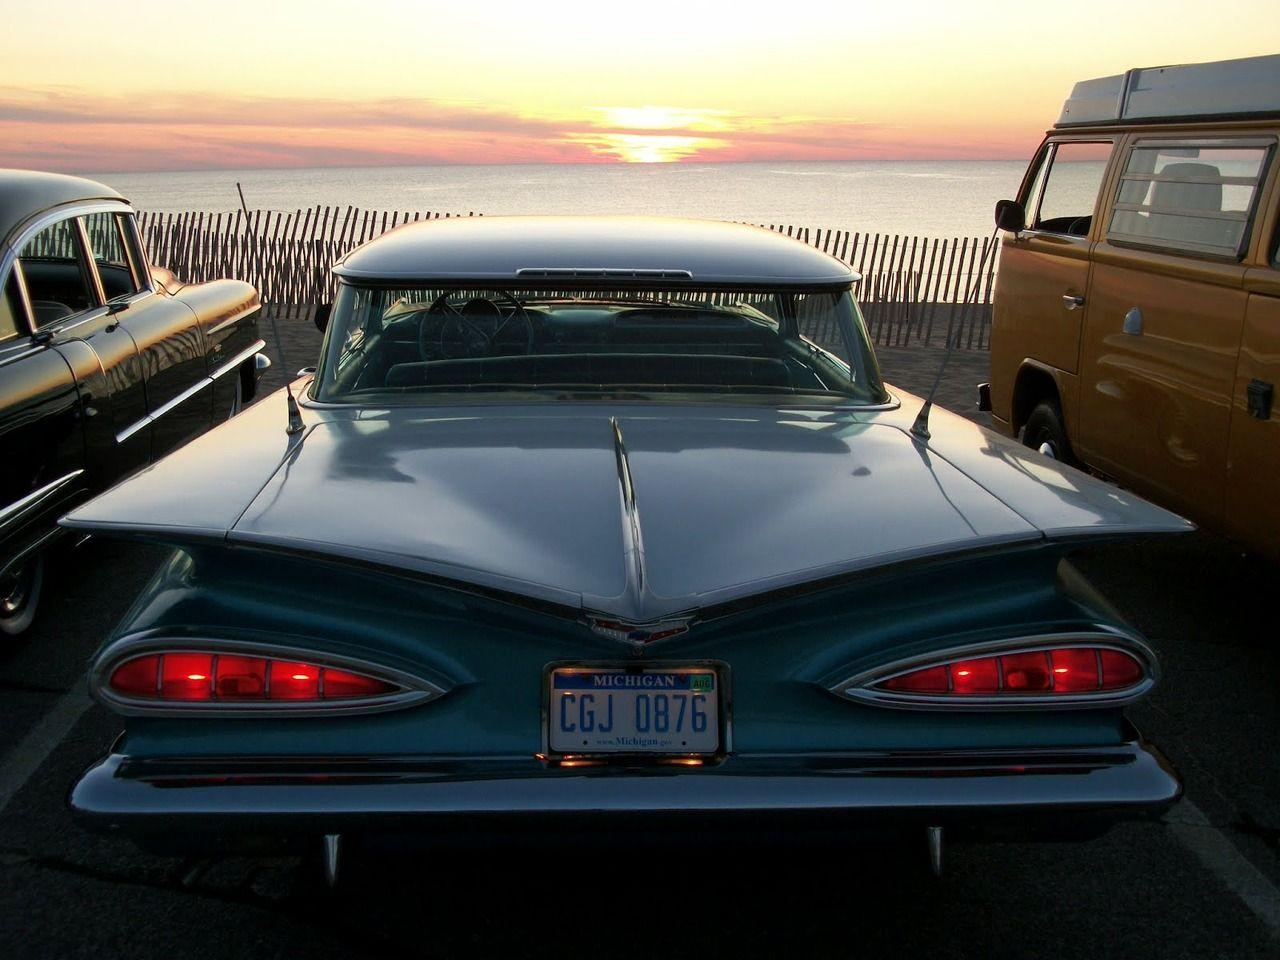 Great old ride...great sunset. #vintagecars #sunsets #classiccars ...